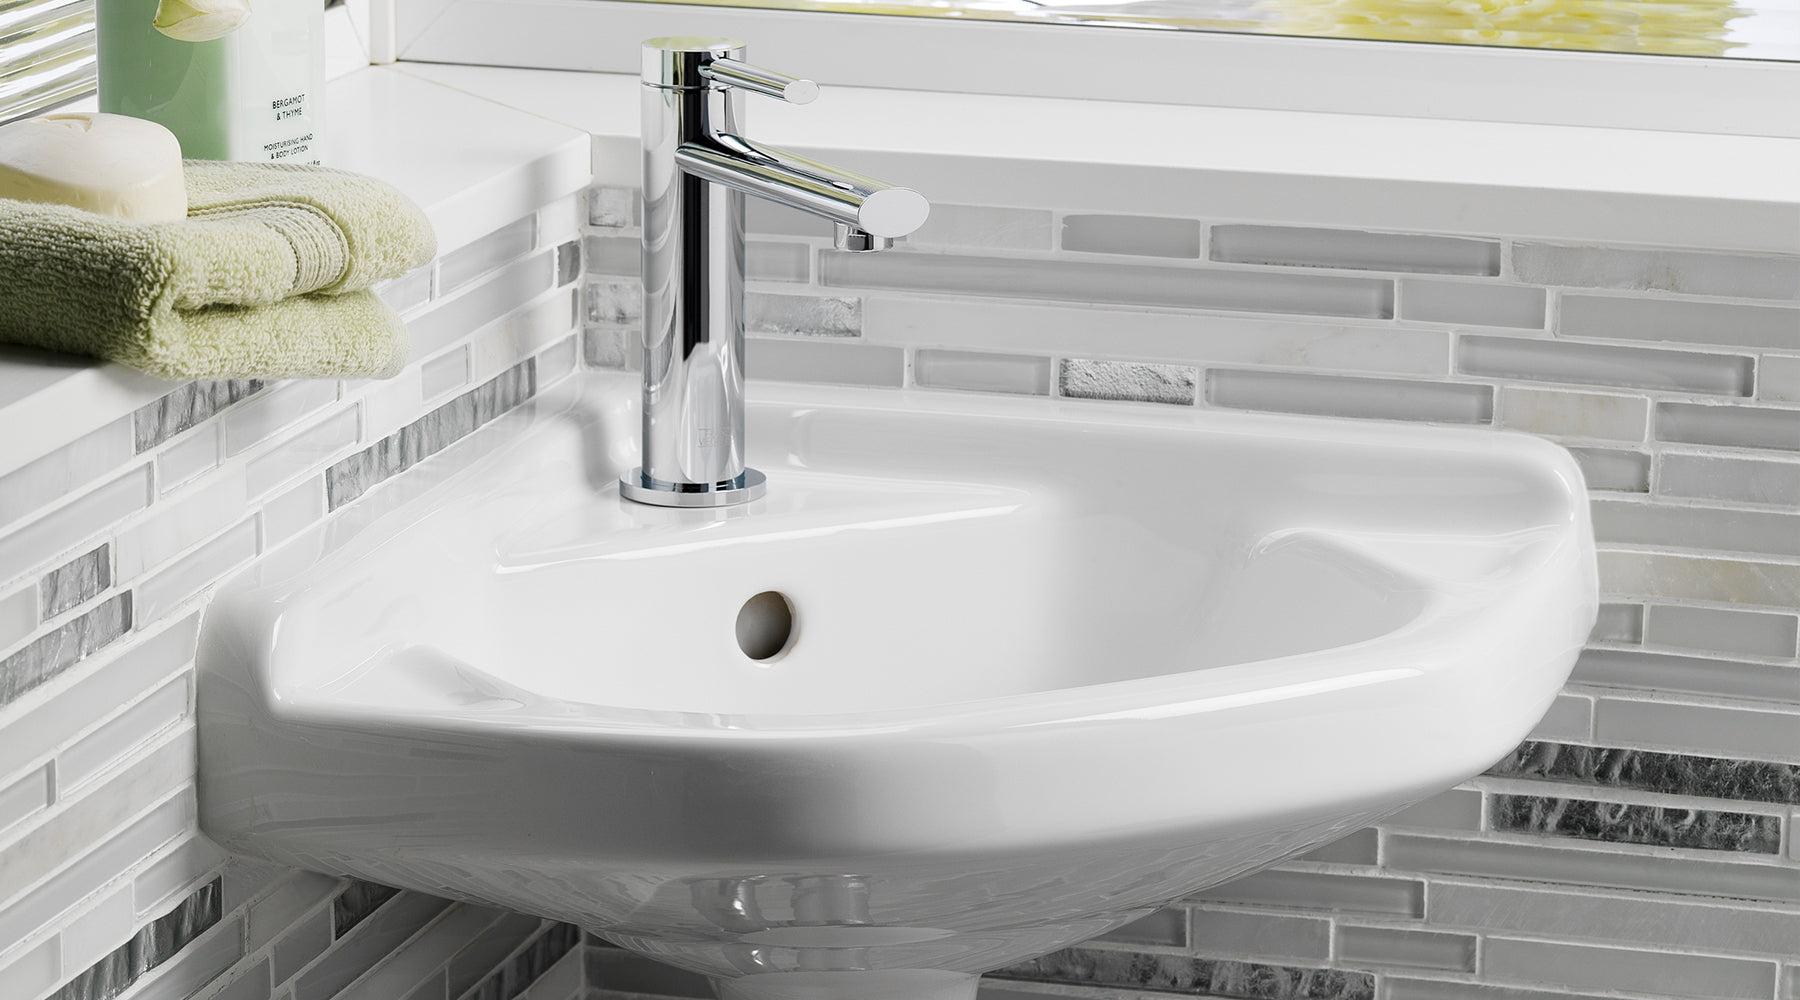 Barclay Products Manufacturer Of Kitchen Bathroom Sinks